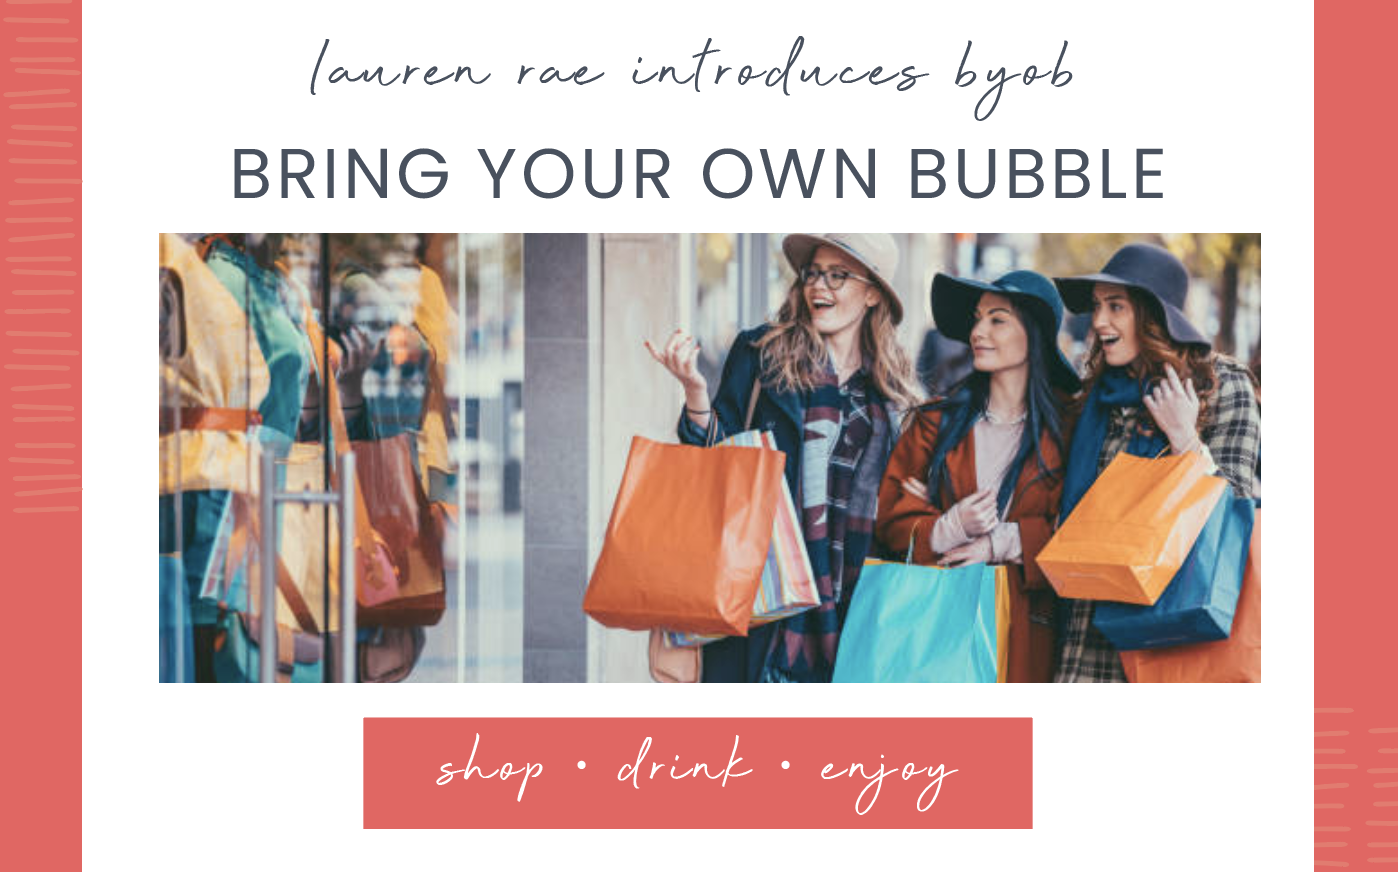 Bring Your Own Bubble